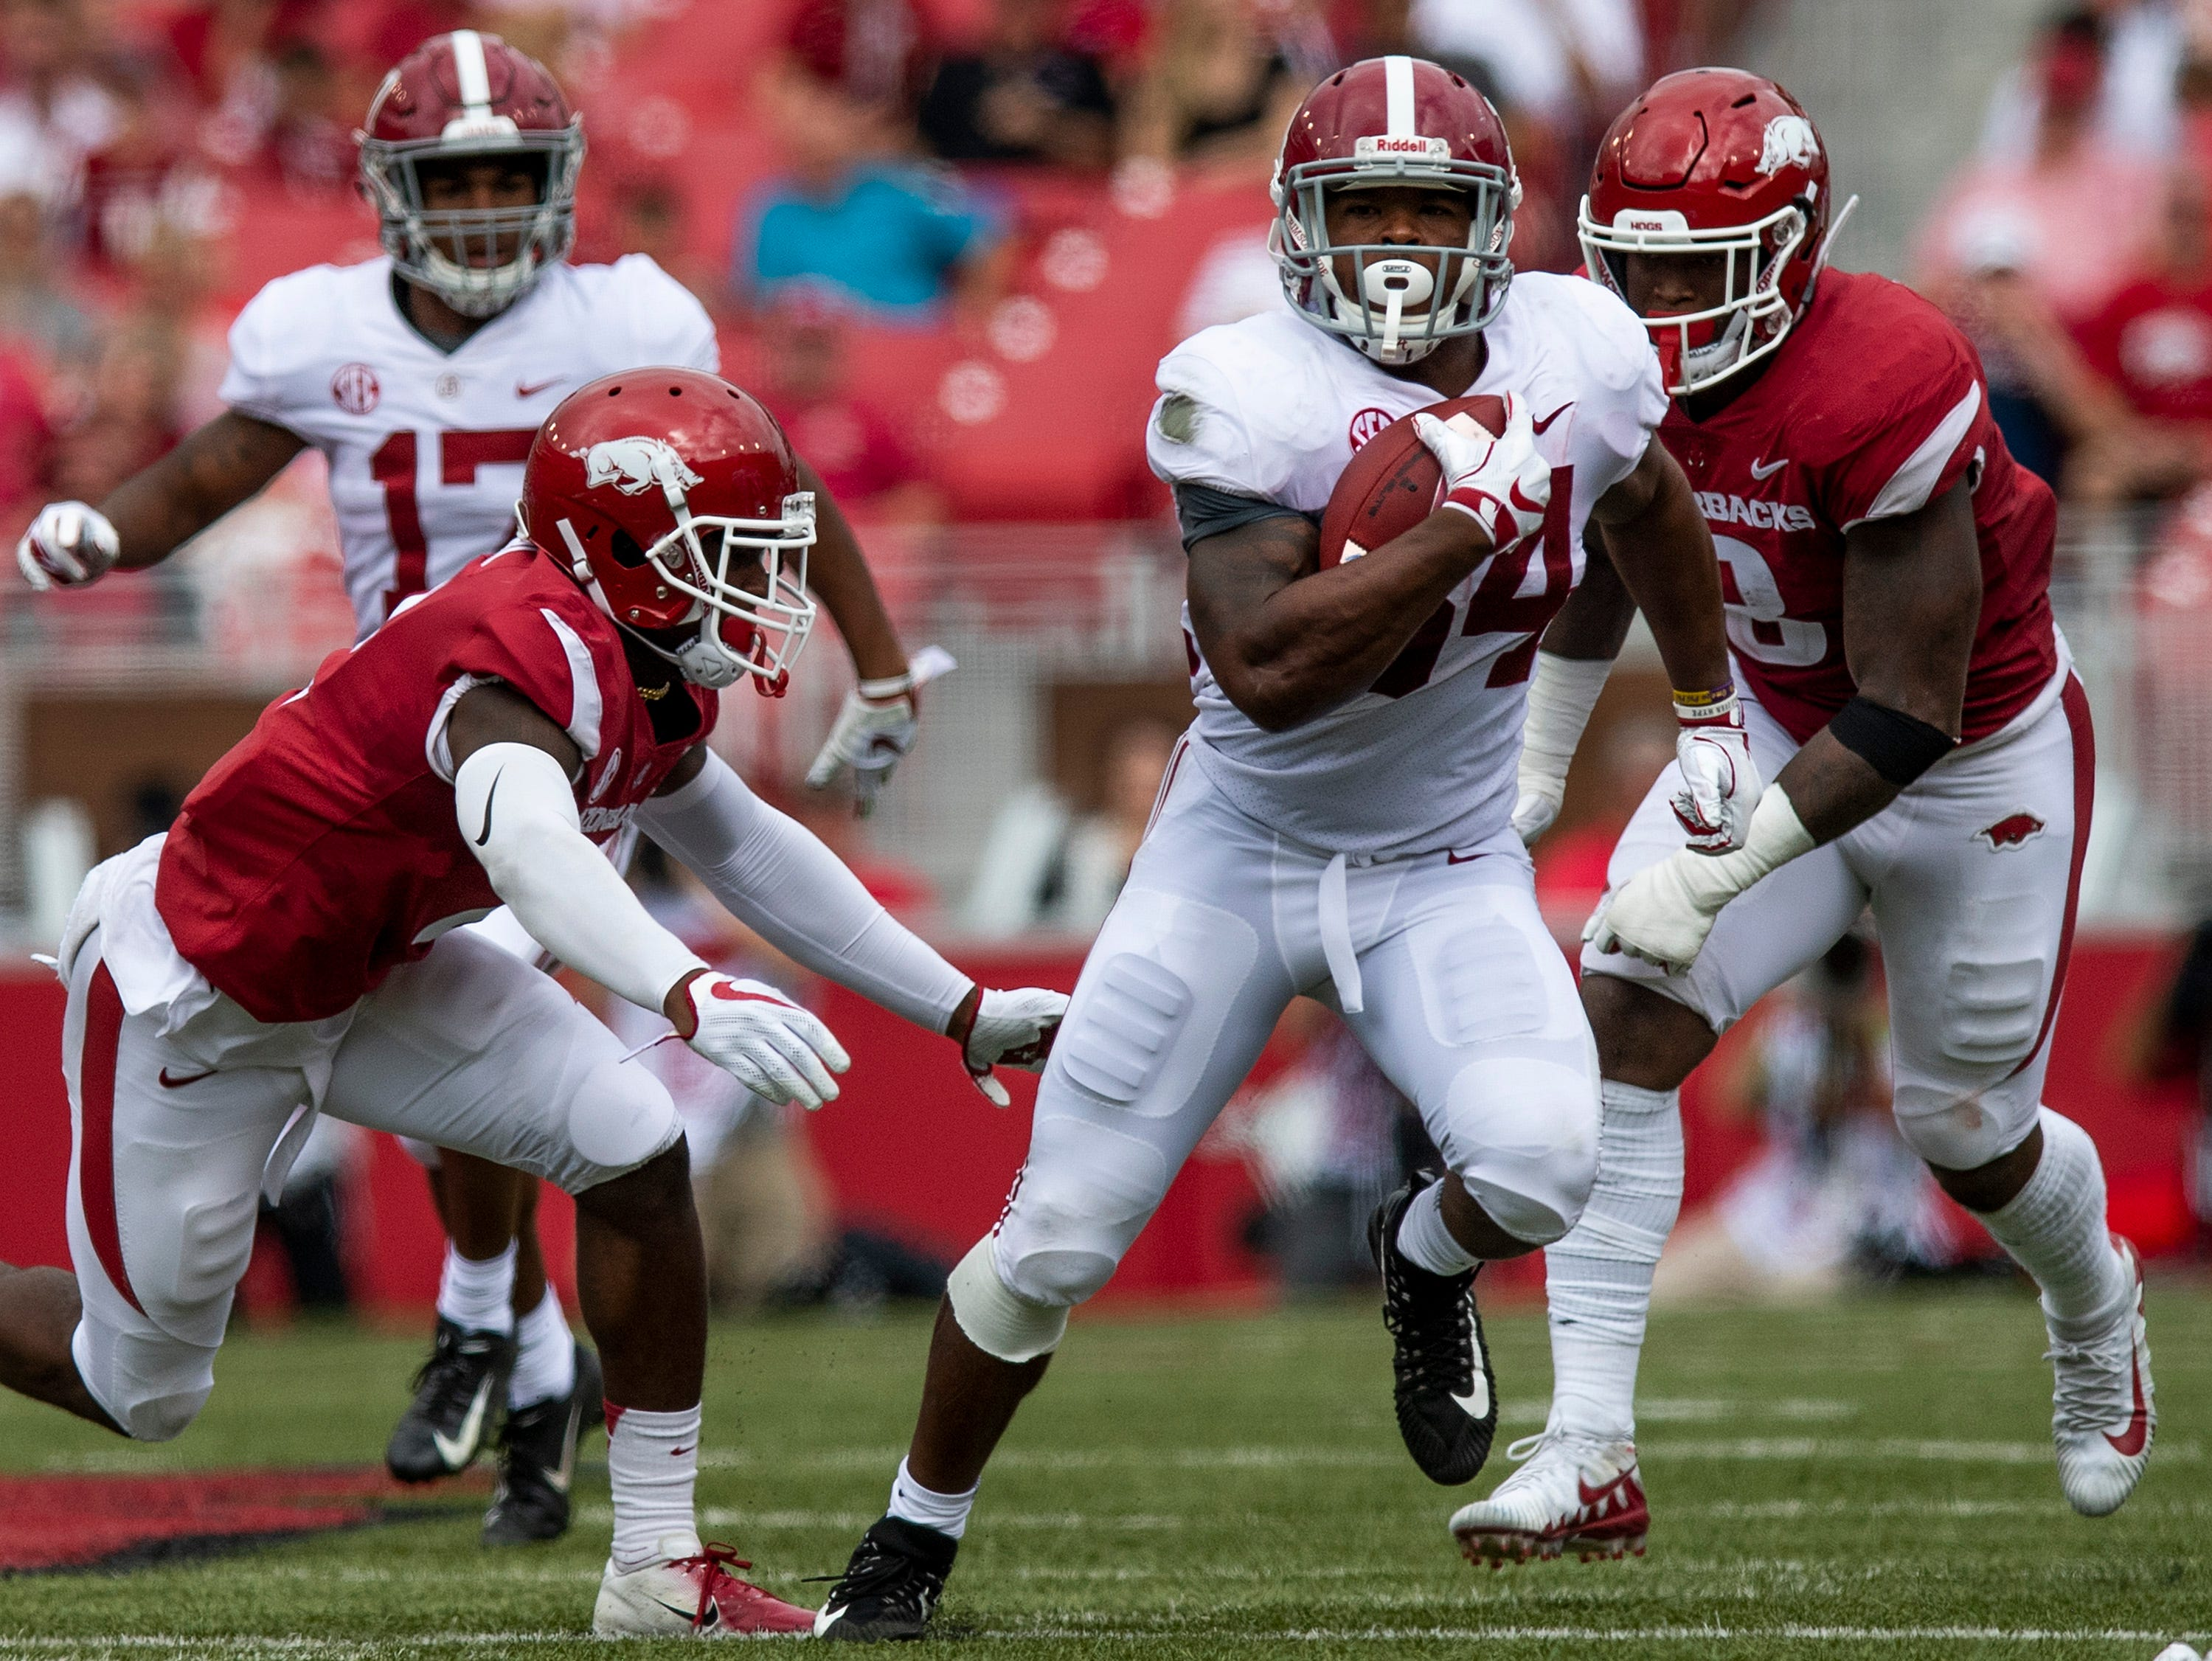 Alabama running back Damien Harris (34) eludes tackles against Arkansas during first half action in Fayetteville, Ark., on Saturday October 6, 2018.